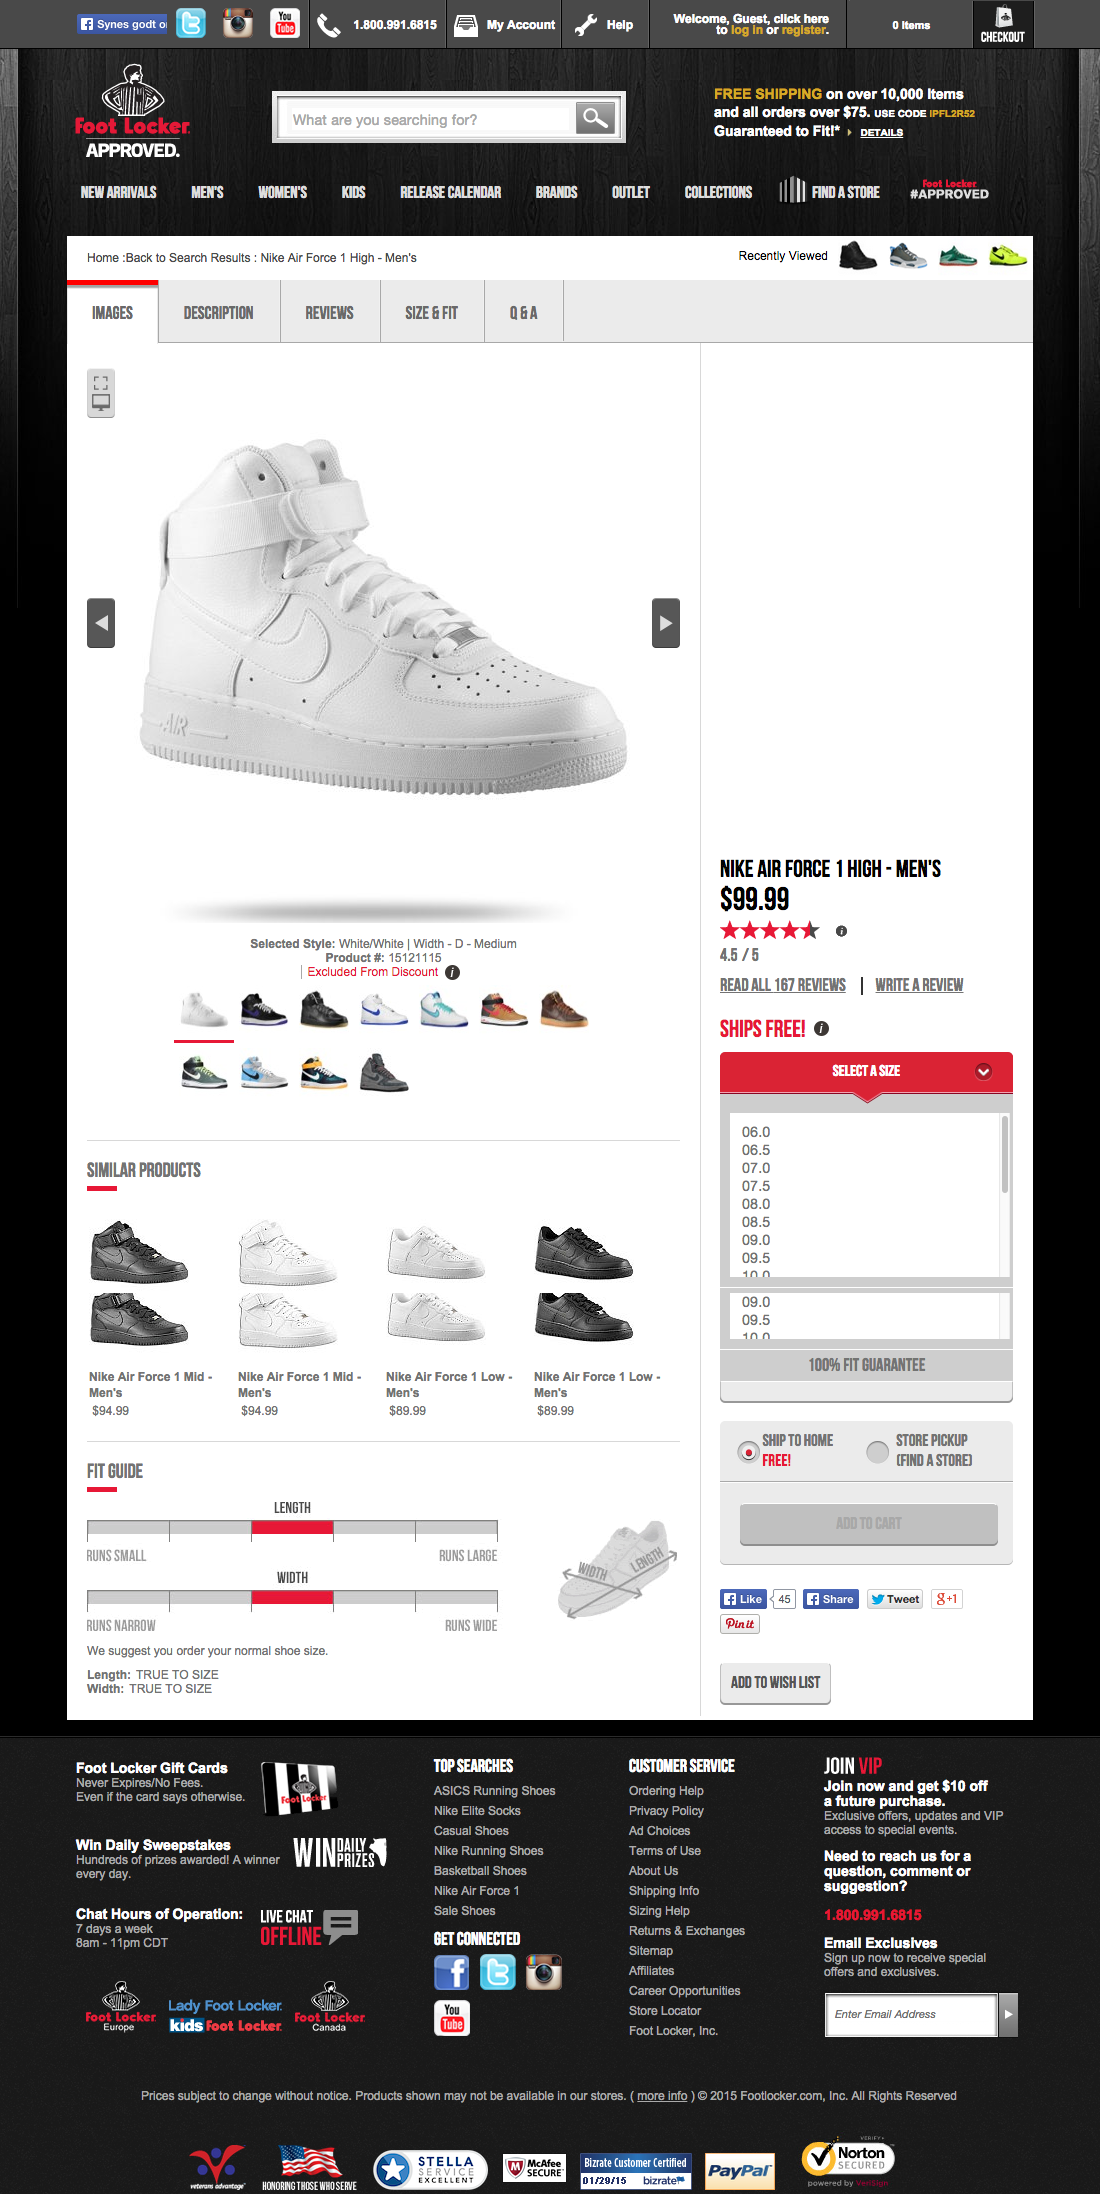 foot locker s product page usability benchmark e commerce in total 4 of foot locker s pages have been benchmarked across 93 usability guidelines from the e commerce product lists research study